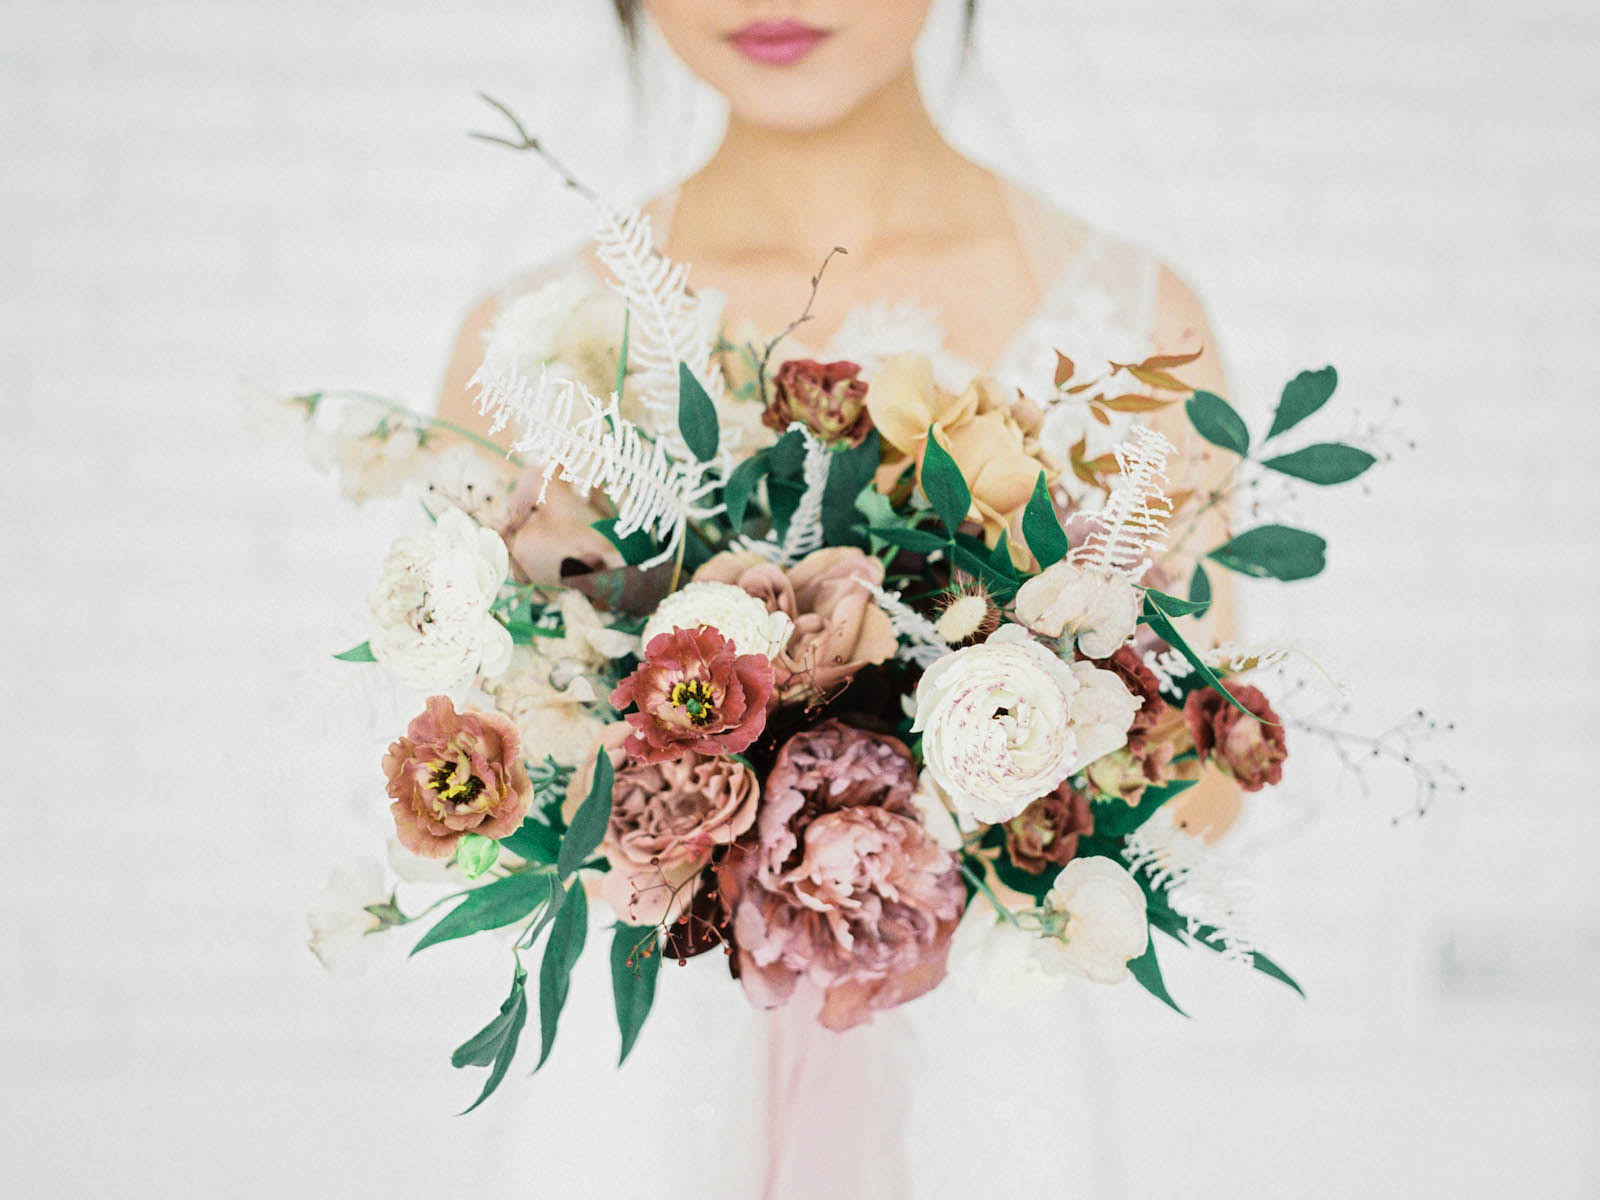 About The Southern Social TX - Wedding magazine for Texas brides